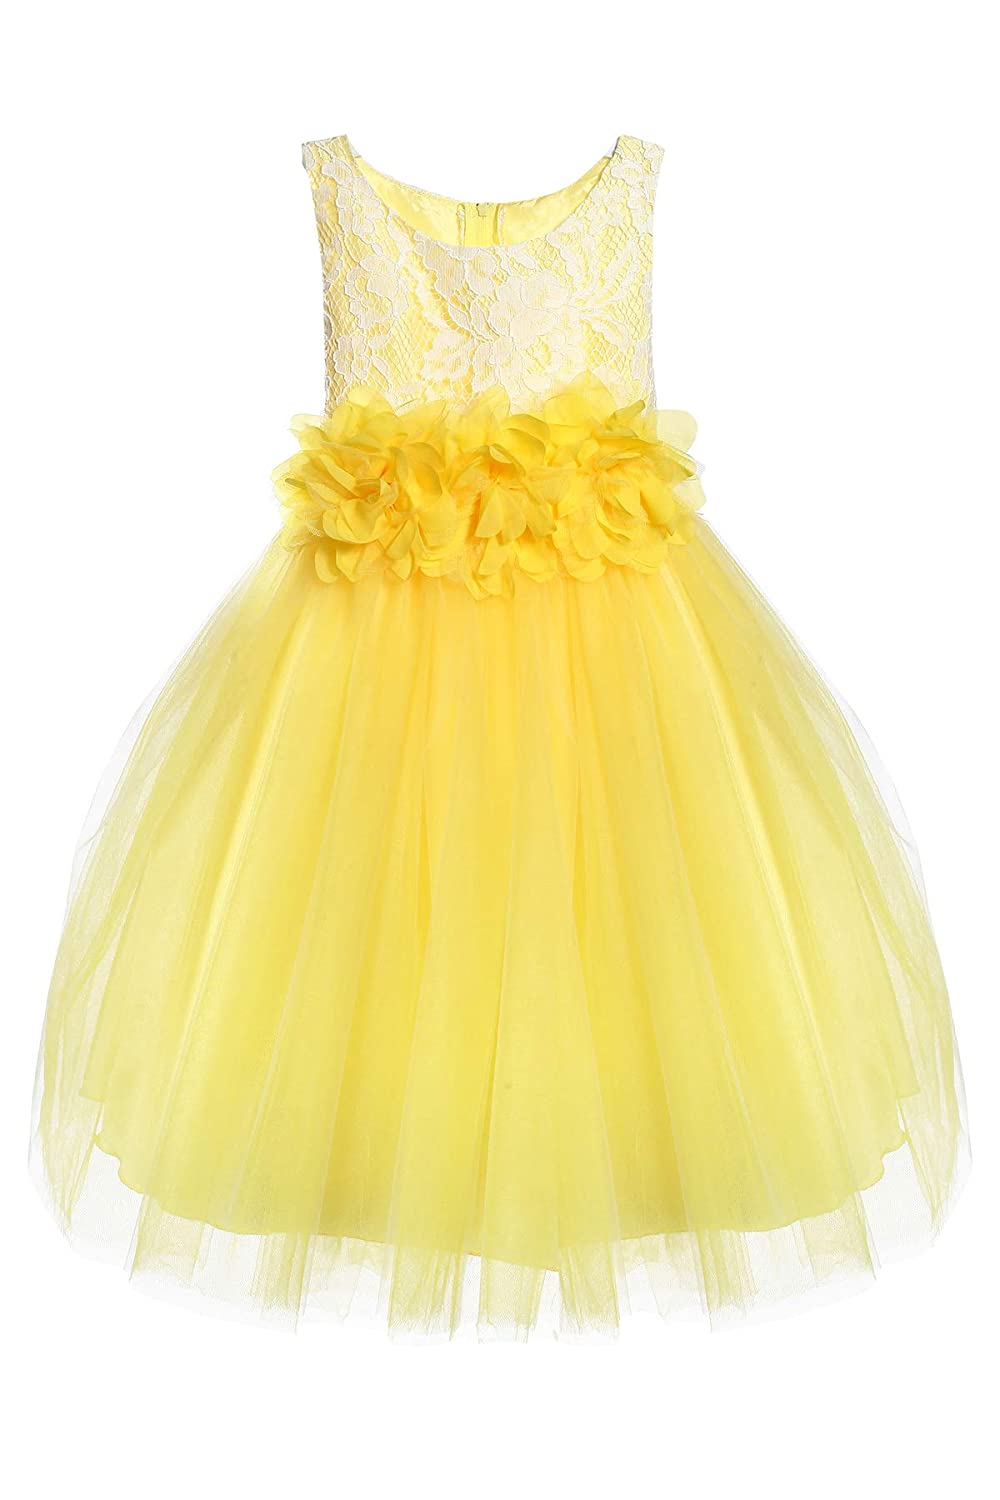 659c59b27 ... tulle dress Size 6 months-12. This elegant knee length dress is perfect  for your little girl. Great for flower girl, party, birthday, spring and  special ...